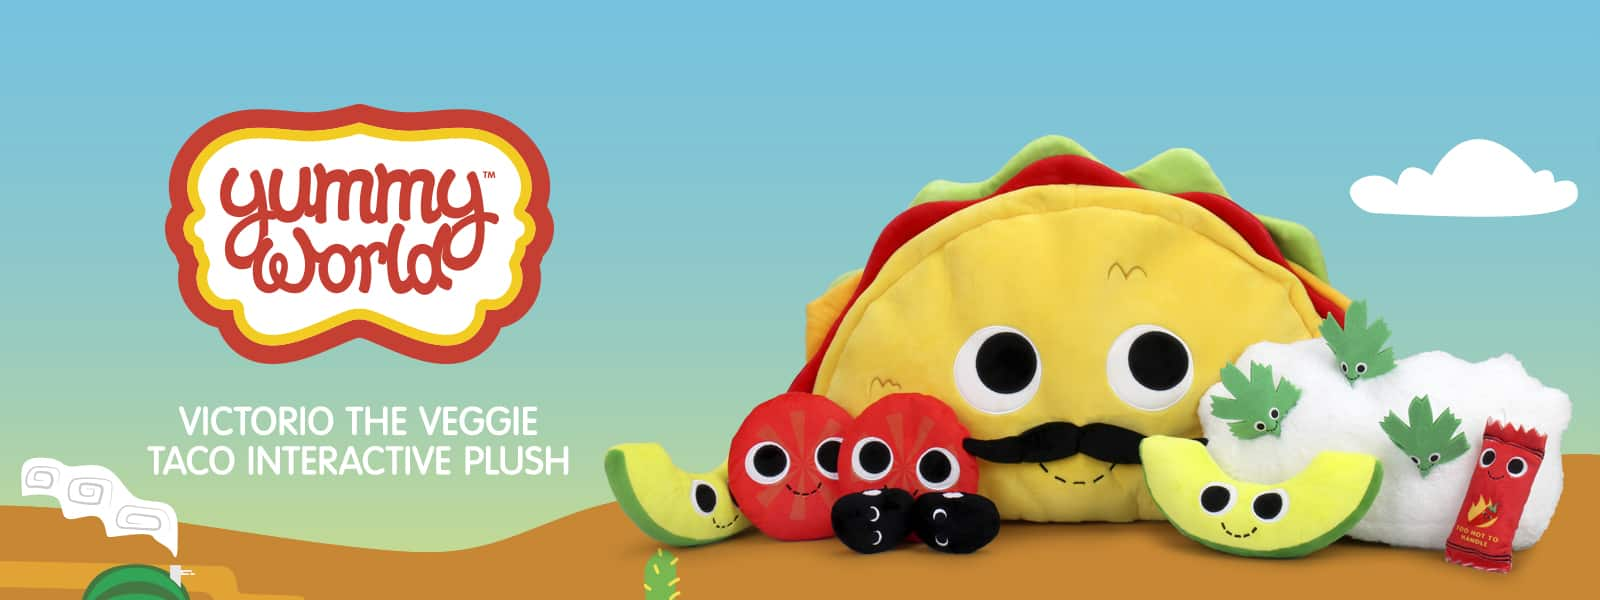 Yummy World Victorio Veggie Taco Plush Set